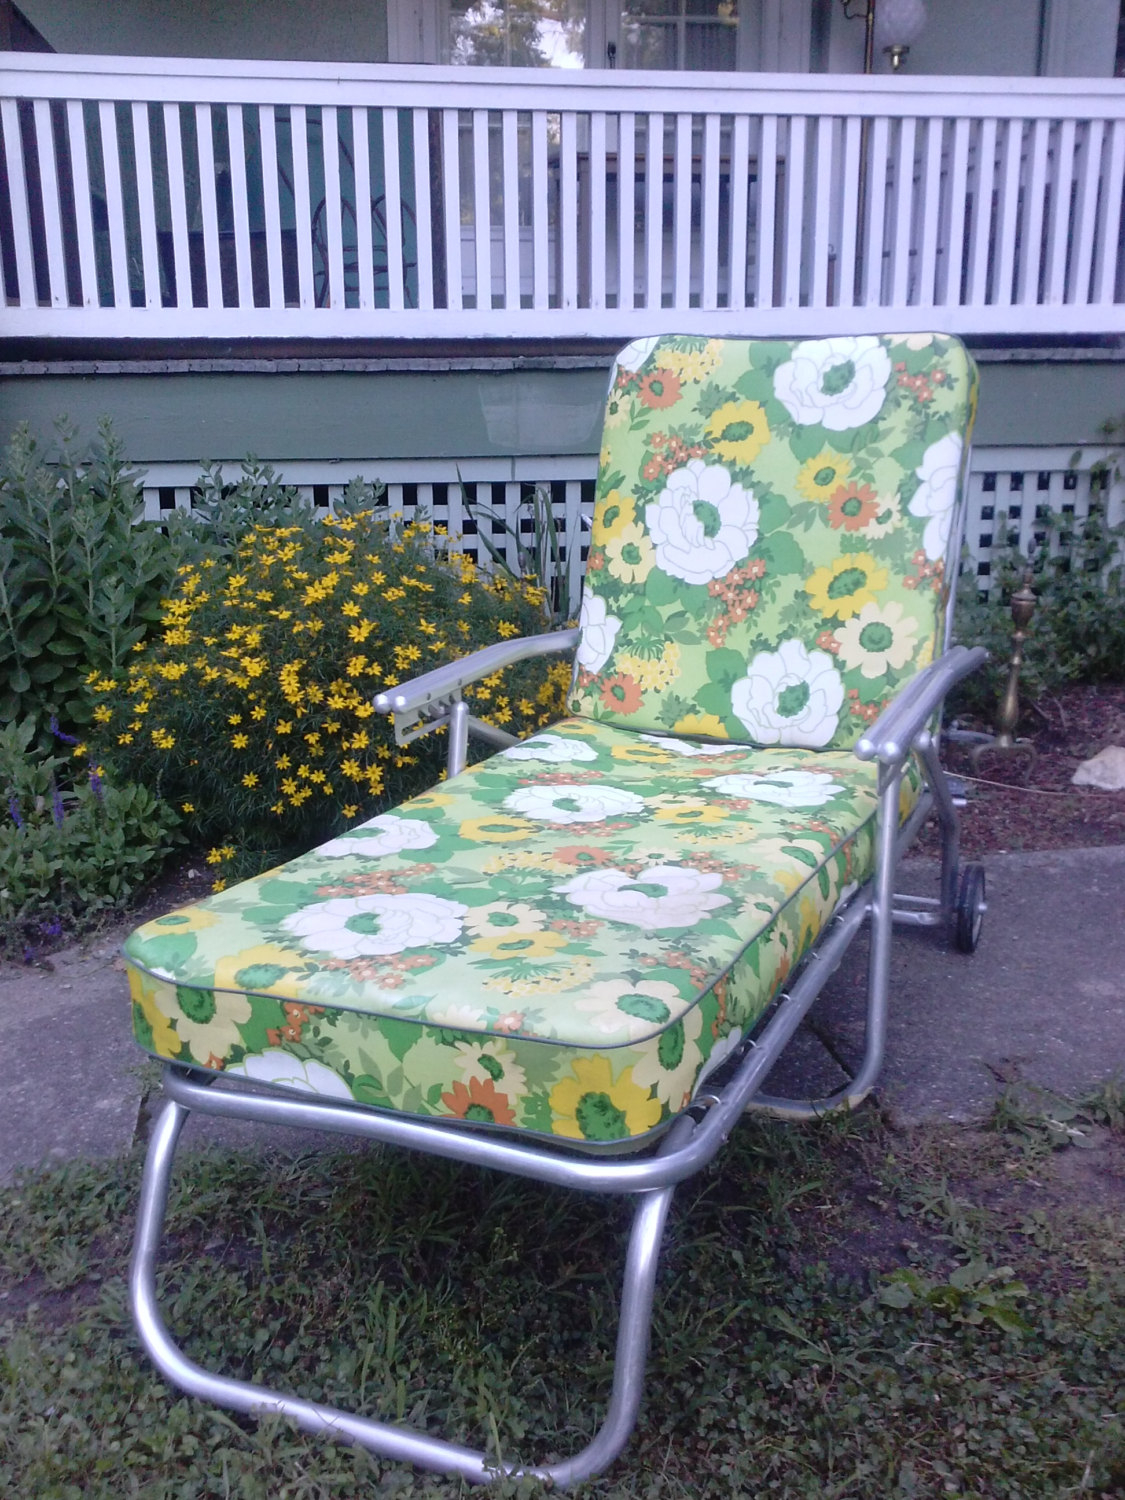 Vintage Mid Century Aluminum Collapsible Chaise Lounge Outdoor Patio  Furniture